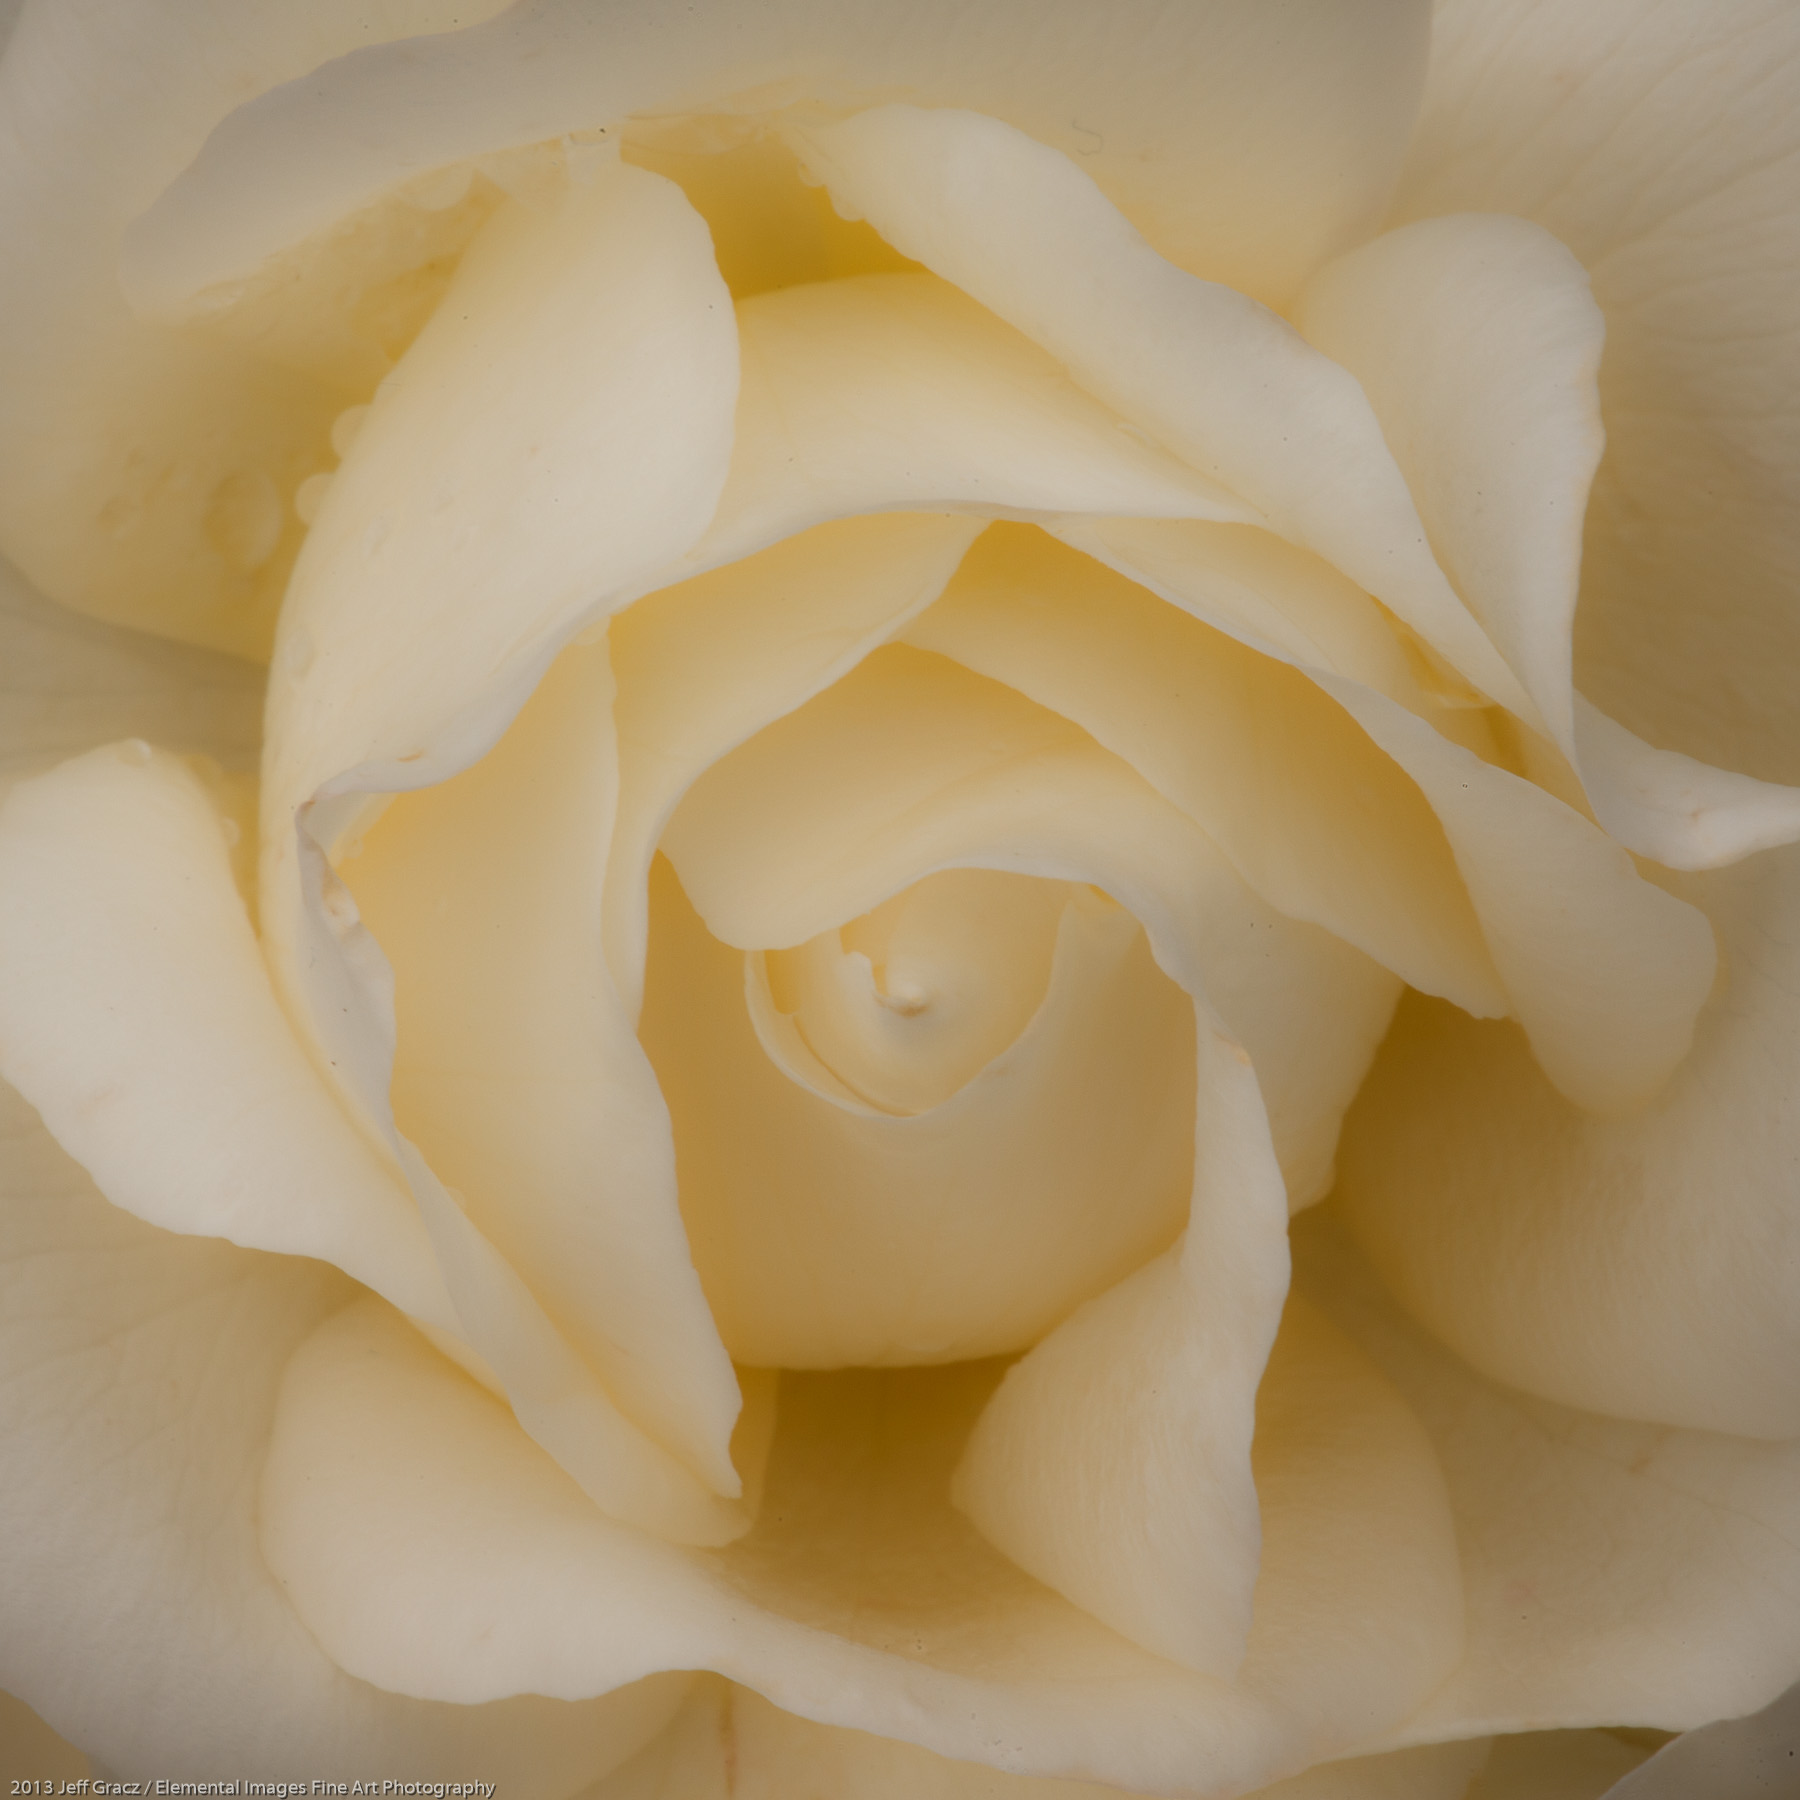 Roses LIV | Portland | OR | USA - © 2013 Jeff Gracz / Elemental Images Fine Art Photography - All Rights Reserved Worldwide